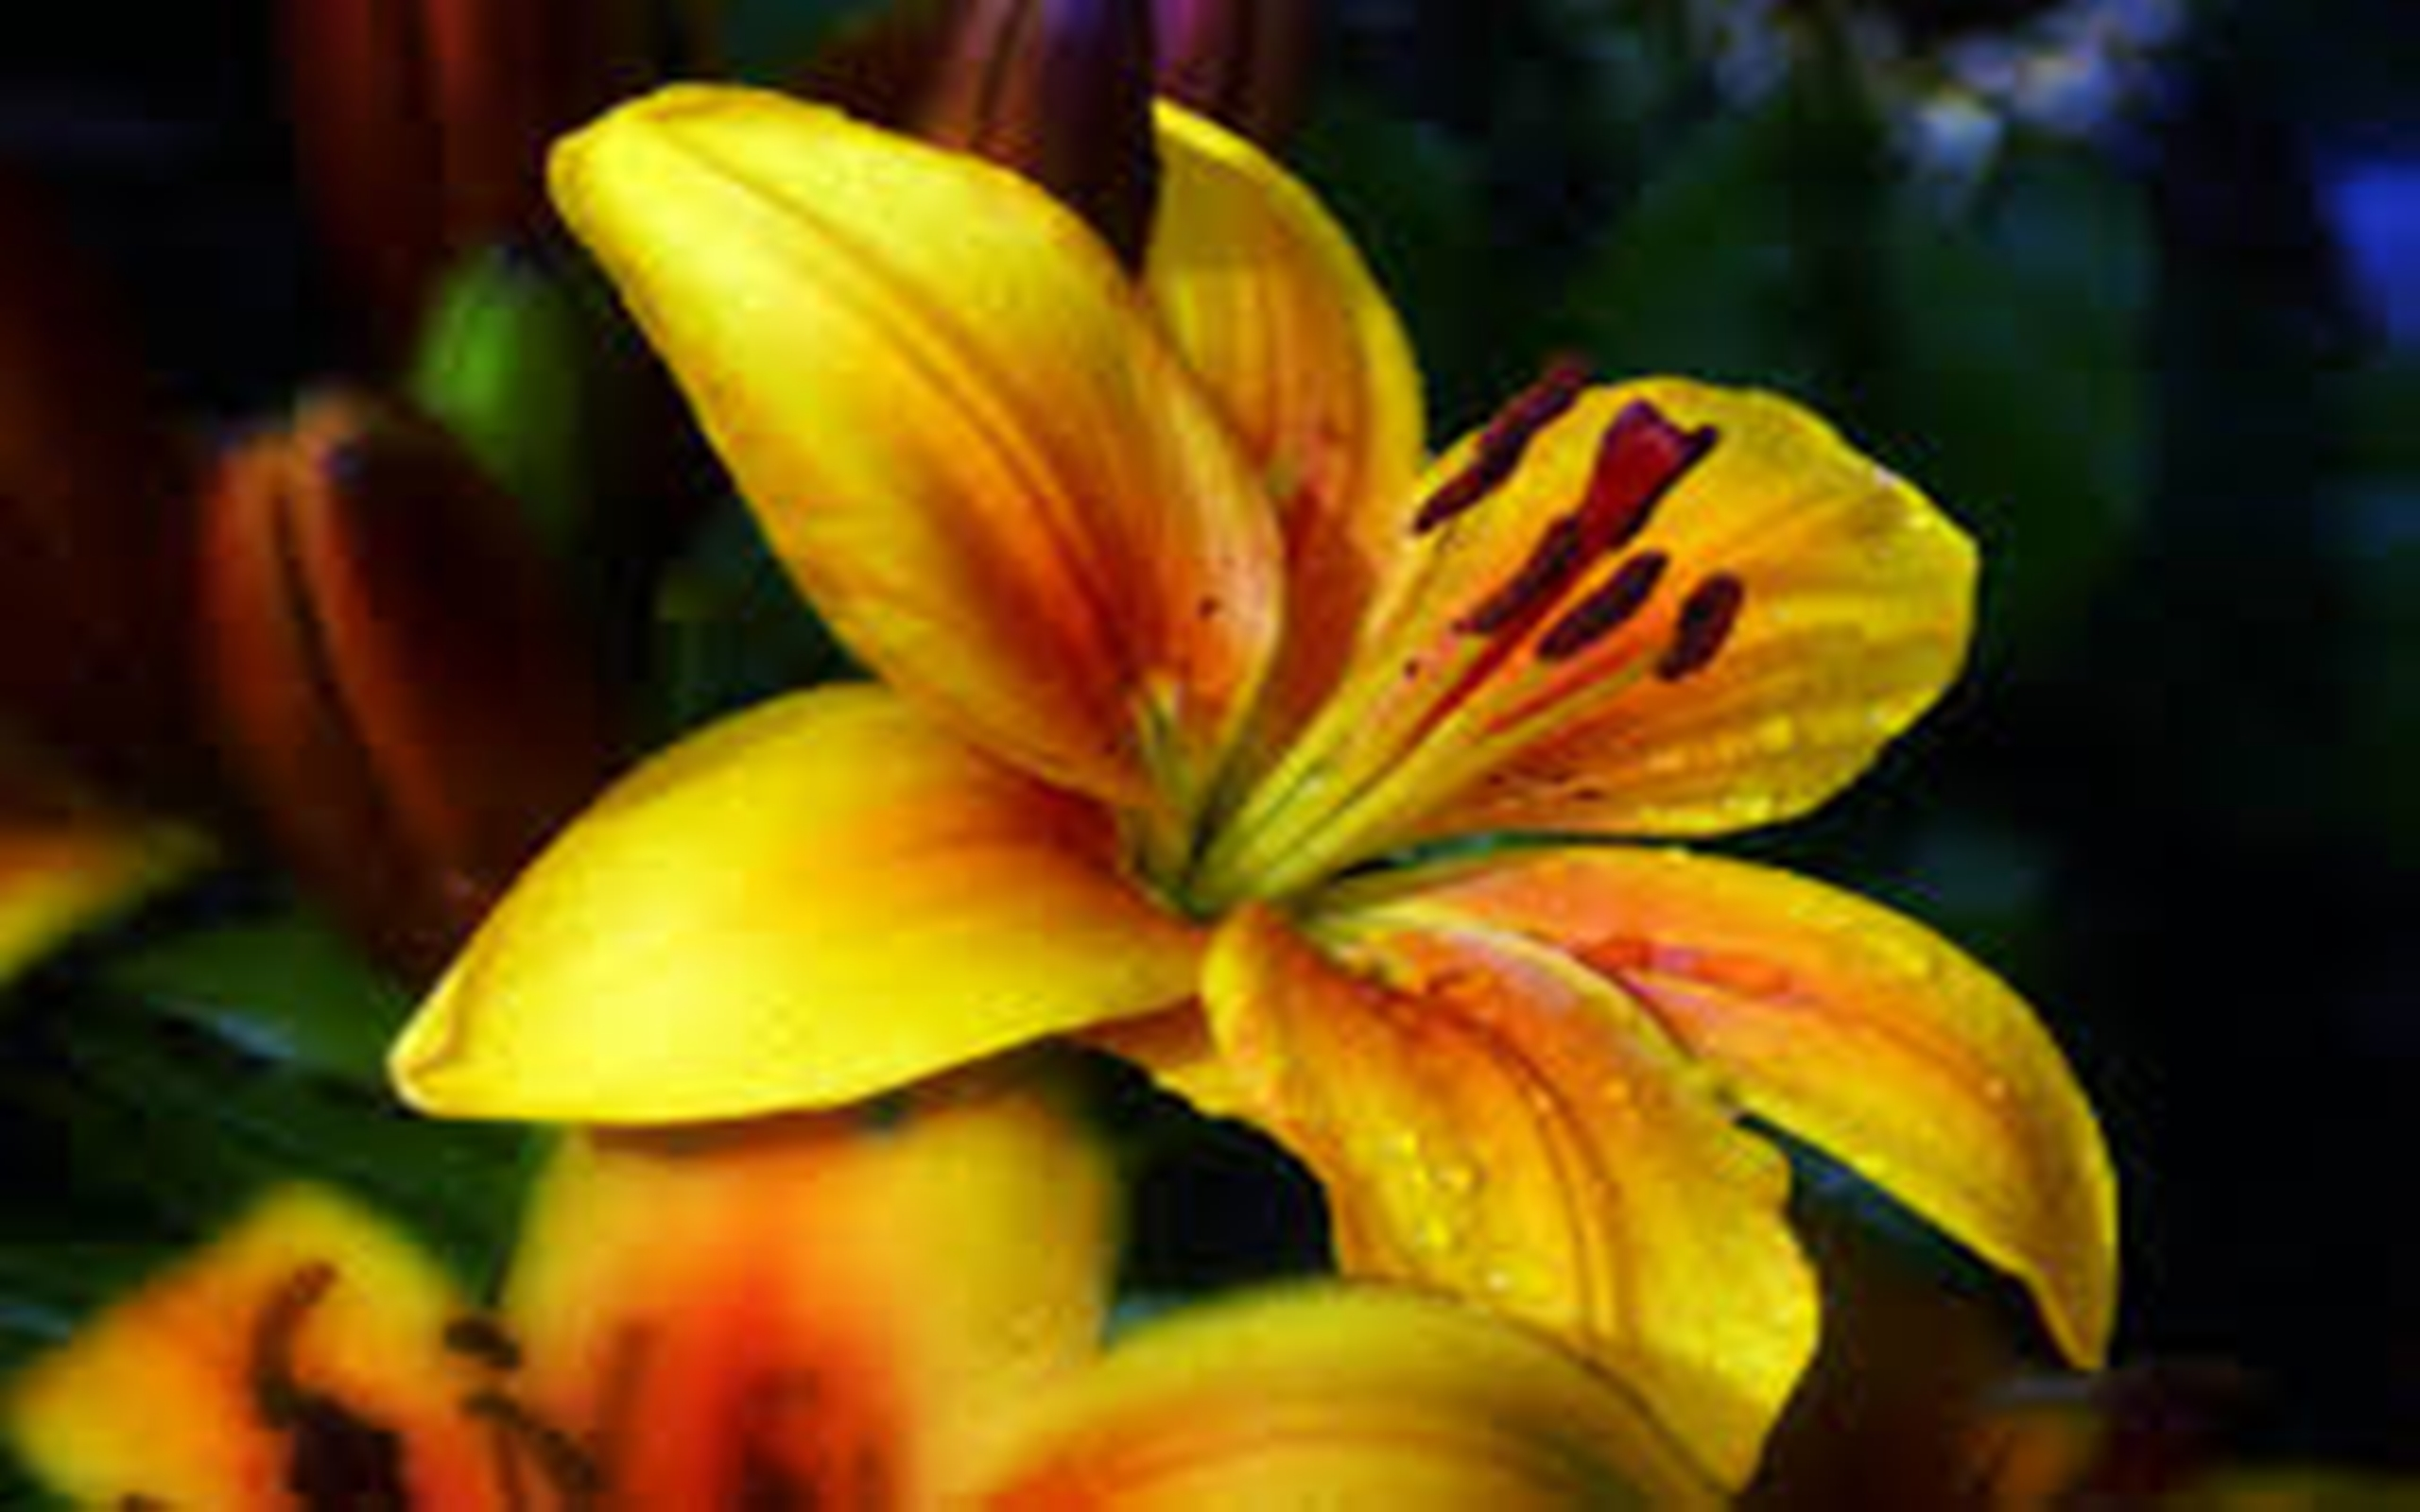 Free Animated Wallpaper For Android Tablet Golden Lily Flower Yellow Nature 2560x1600 Wallpapers13 Com